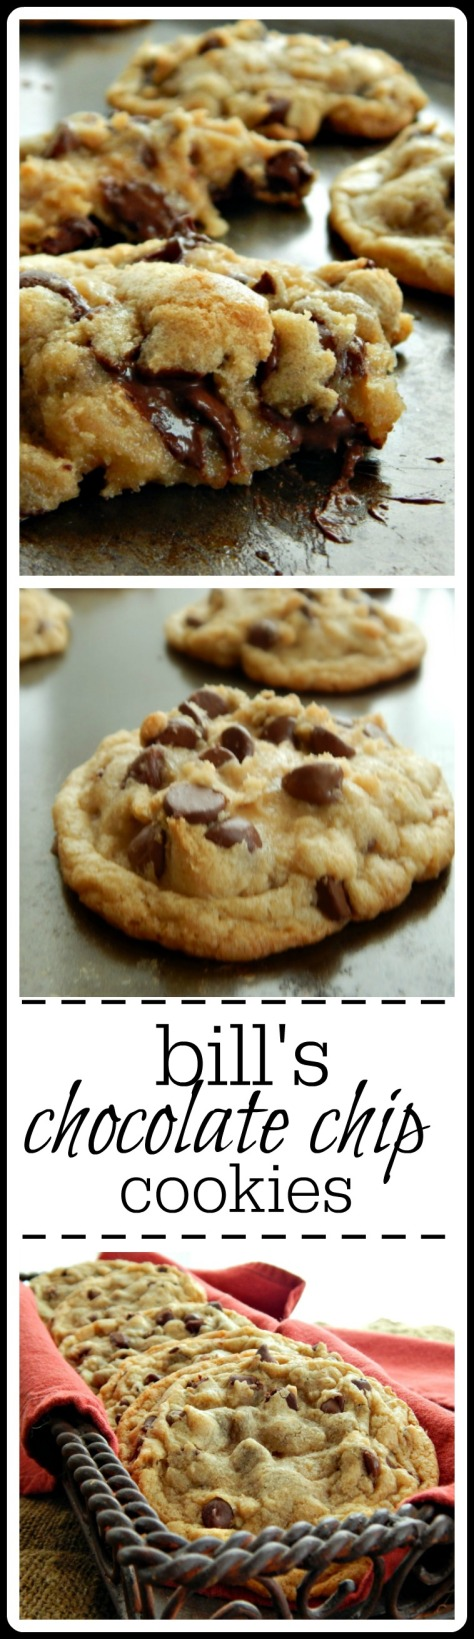 My very favorite Chocolate Chip Cookie - large and luscious!